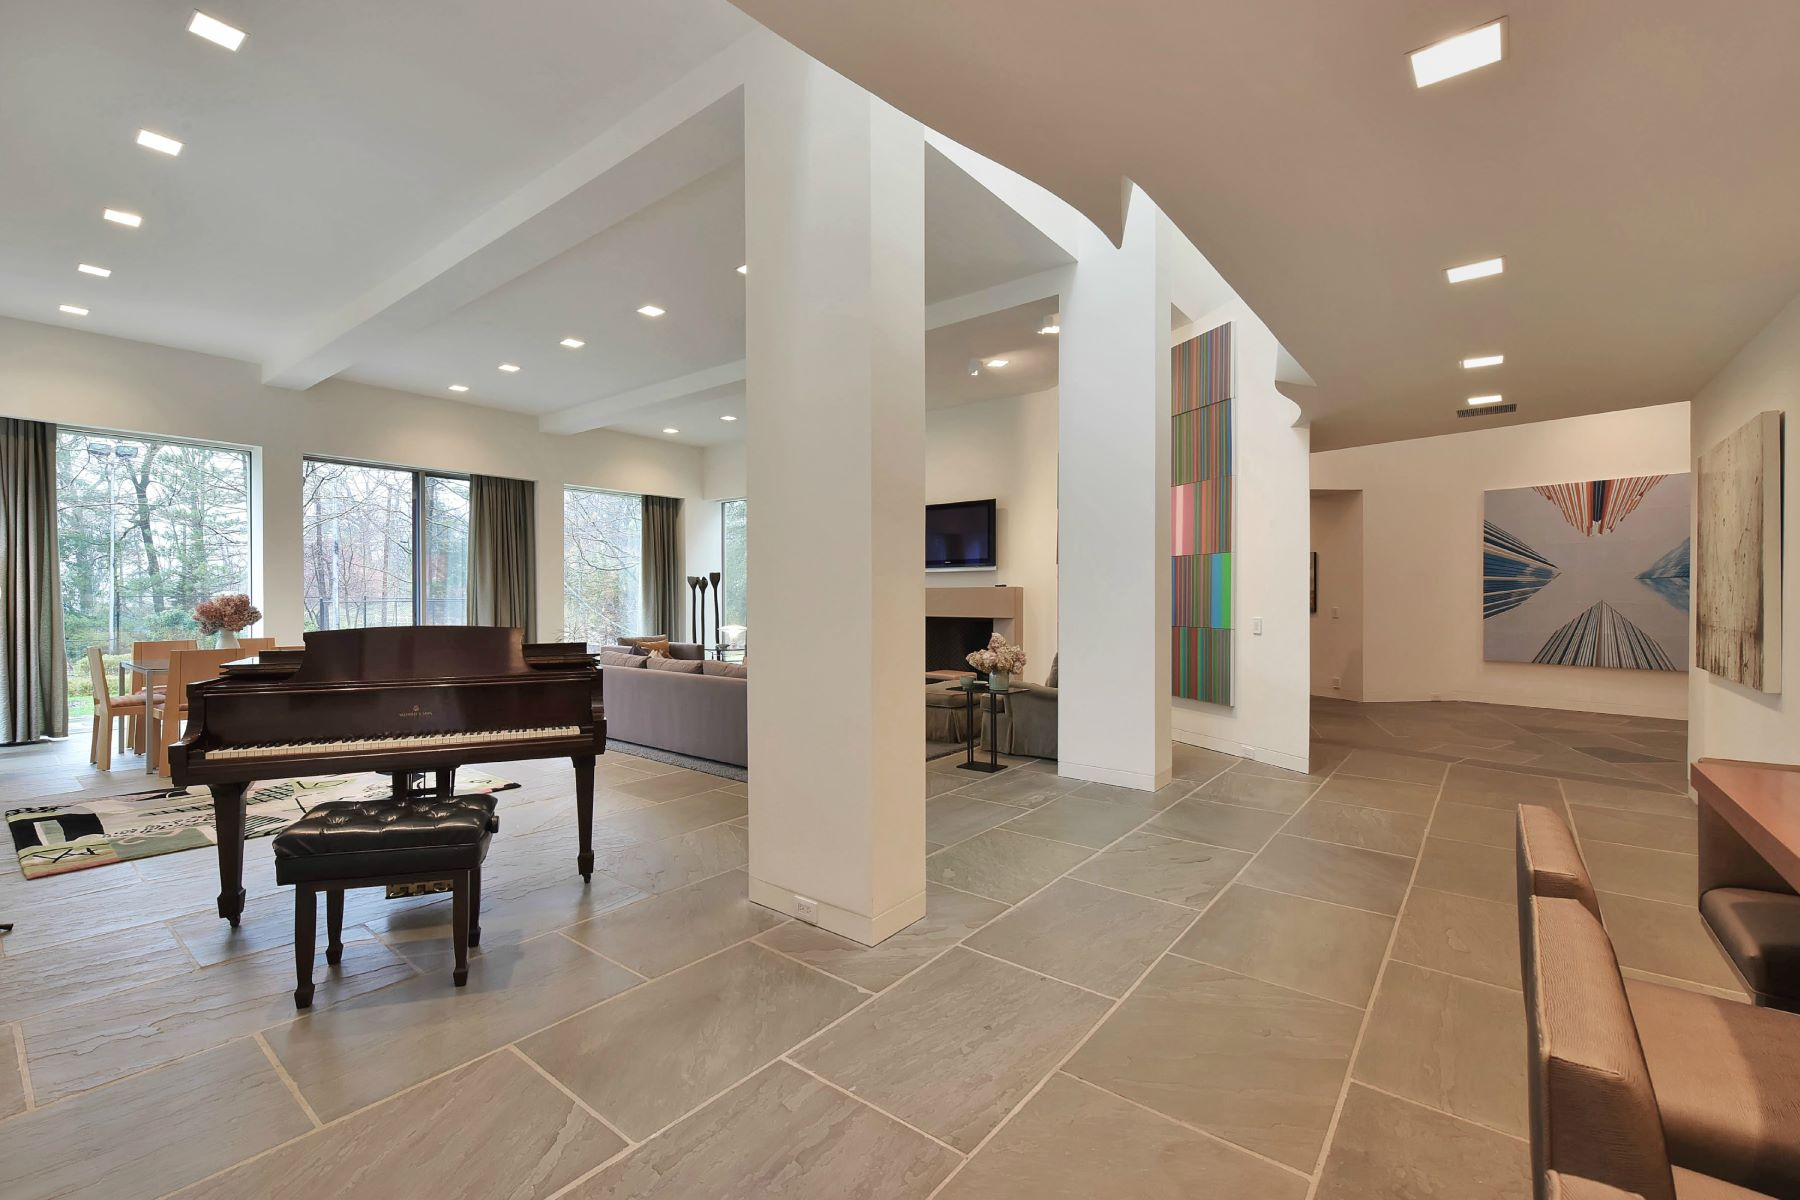 Additional photo for property listing at The Quintessential, Understated, Post-Modern Home 10 Nelson Place, Tenafly, New Jersey 07670 United States